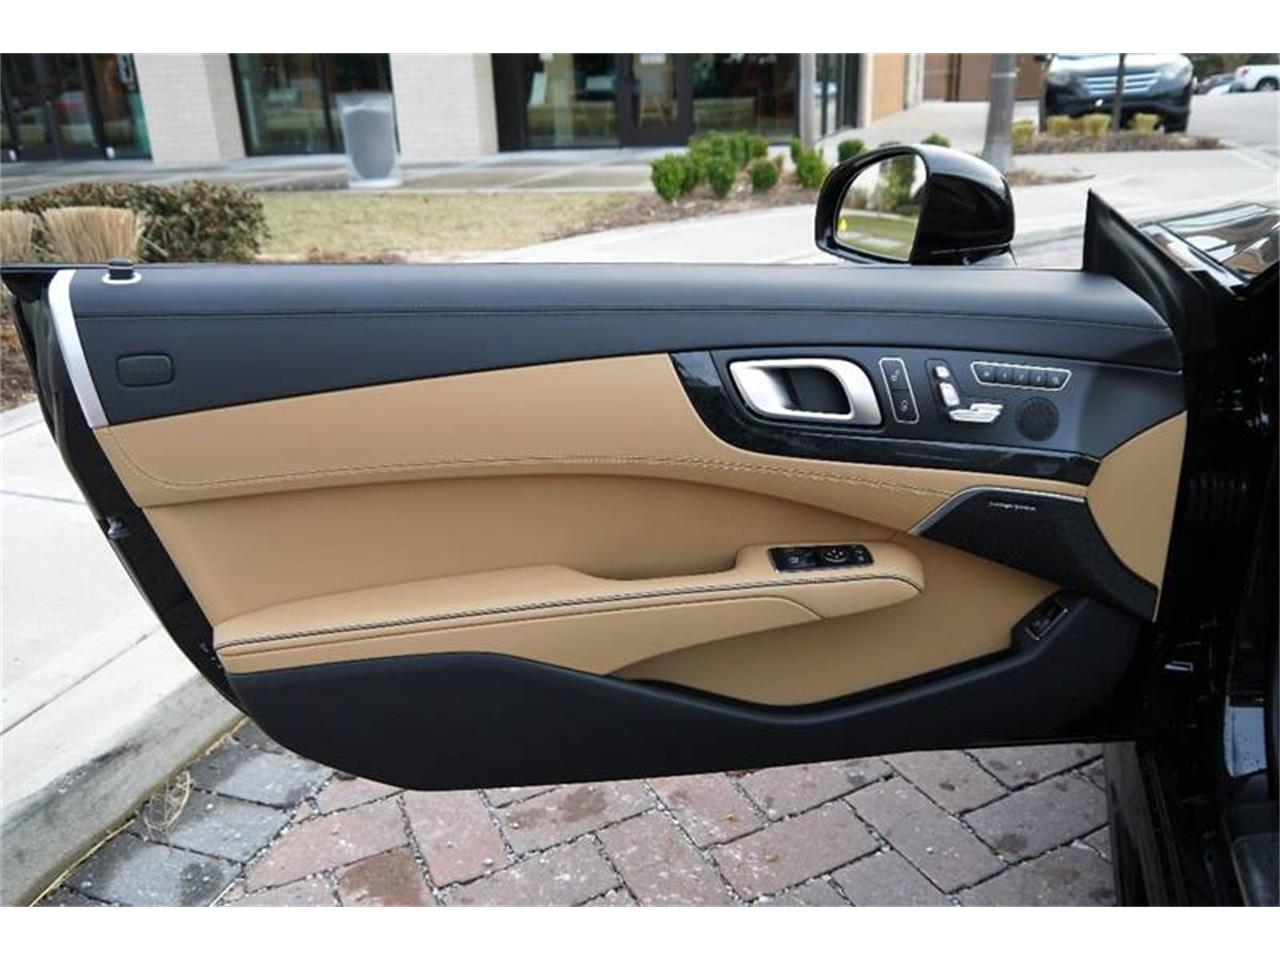 Large Picture of 2017 Mercedes-Benz SL-Class located in Tennessee - $139,800.00 - MODA